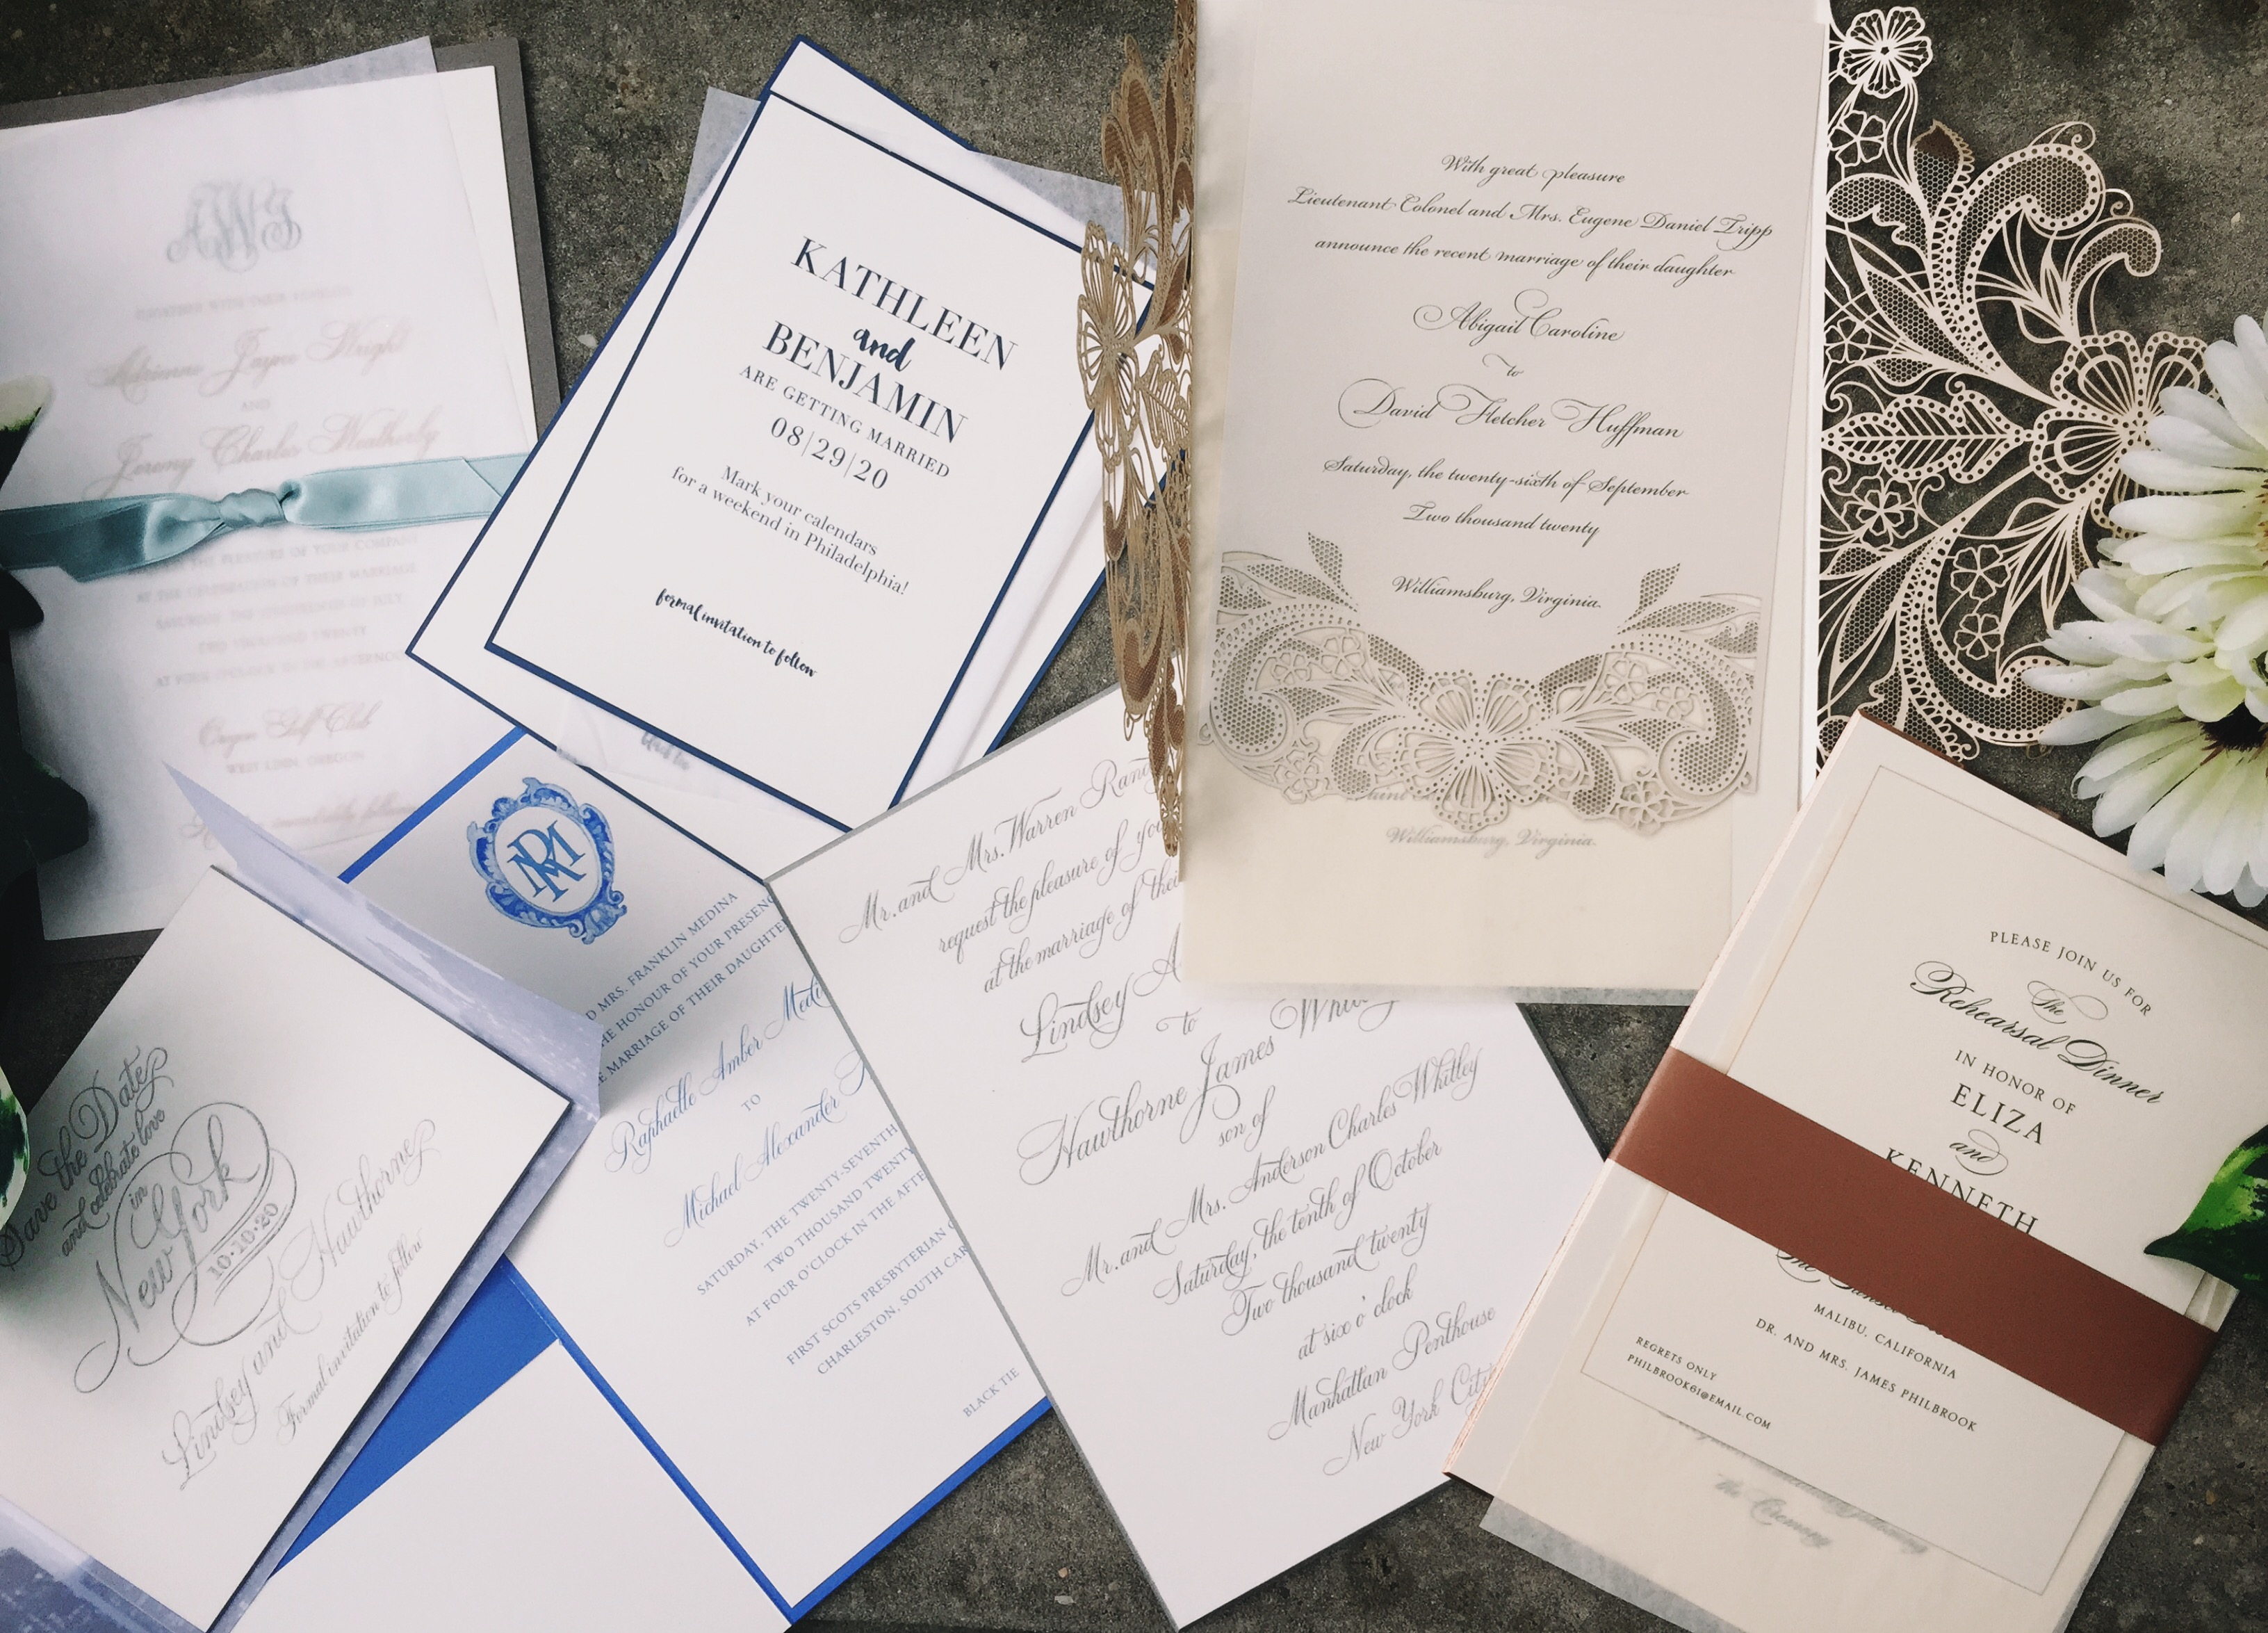 Wedding Invitations William Arthur: Bride's Guide To Prepping For The Big Day